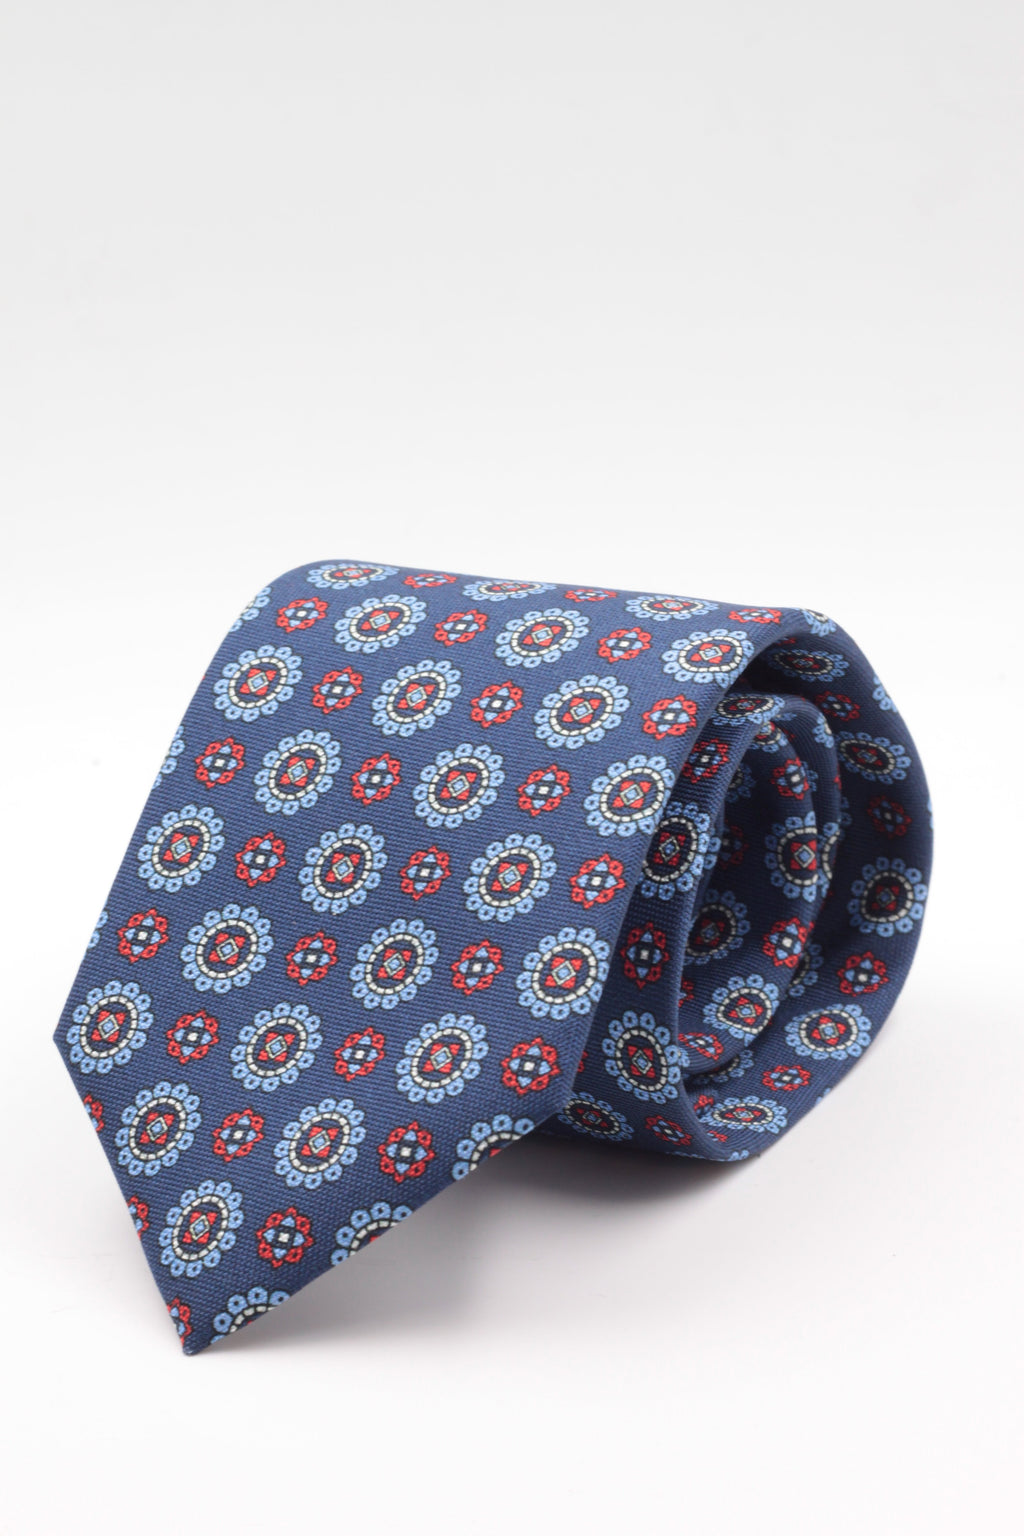 100% Printed Panama Silk Italian fabric Self Tipped Royal blue, red, white and light blue motif tie  Handmade in Italy 8 cm x 150 cm